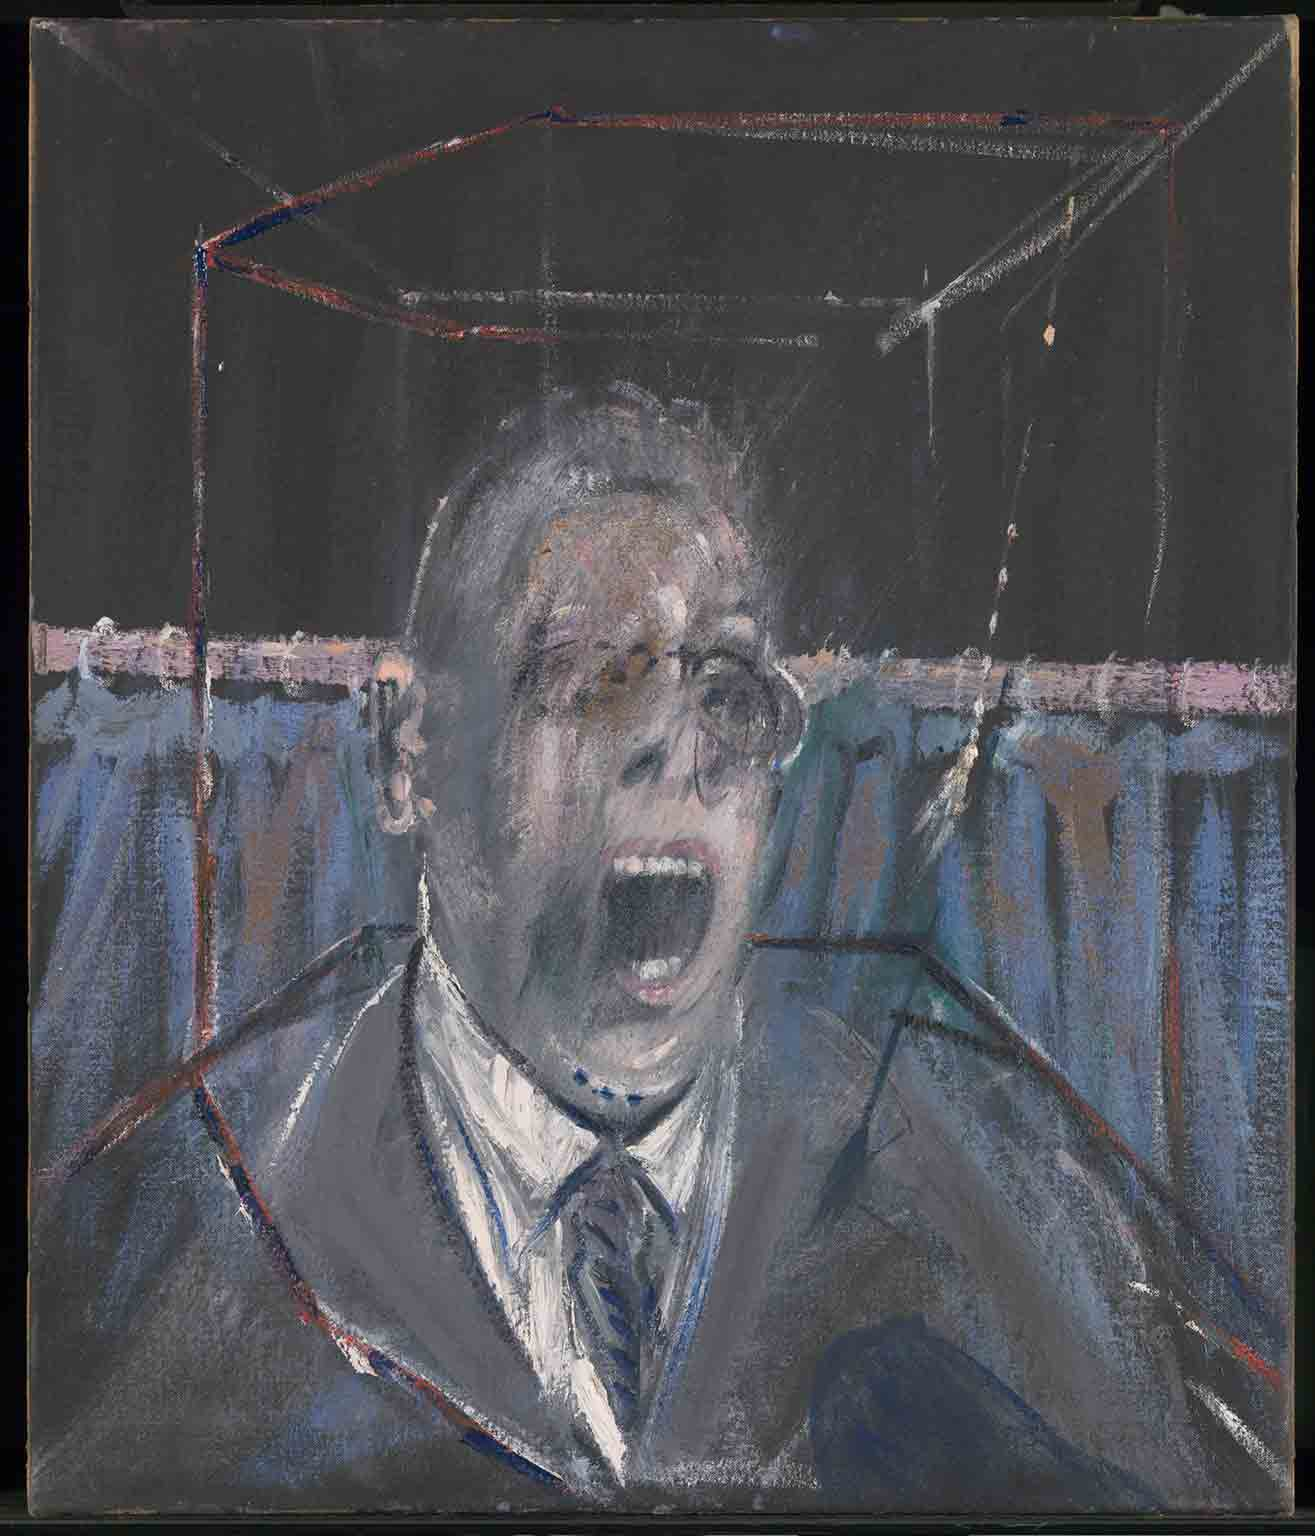 Francis Bacon: Invisible Rooms, Tate Liverpool, 18 May – 18 September - Francis Bacon, Study for a Portrait, 1952. © Estate of Francis Bacon